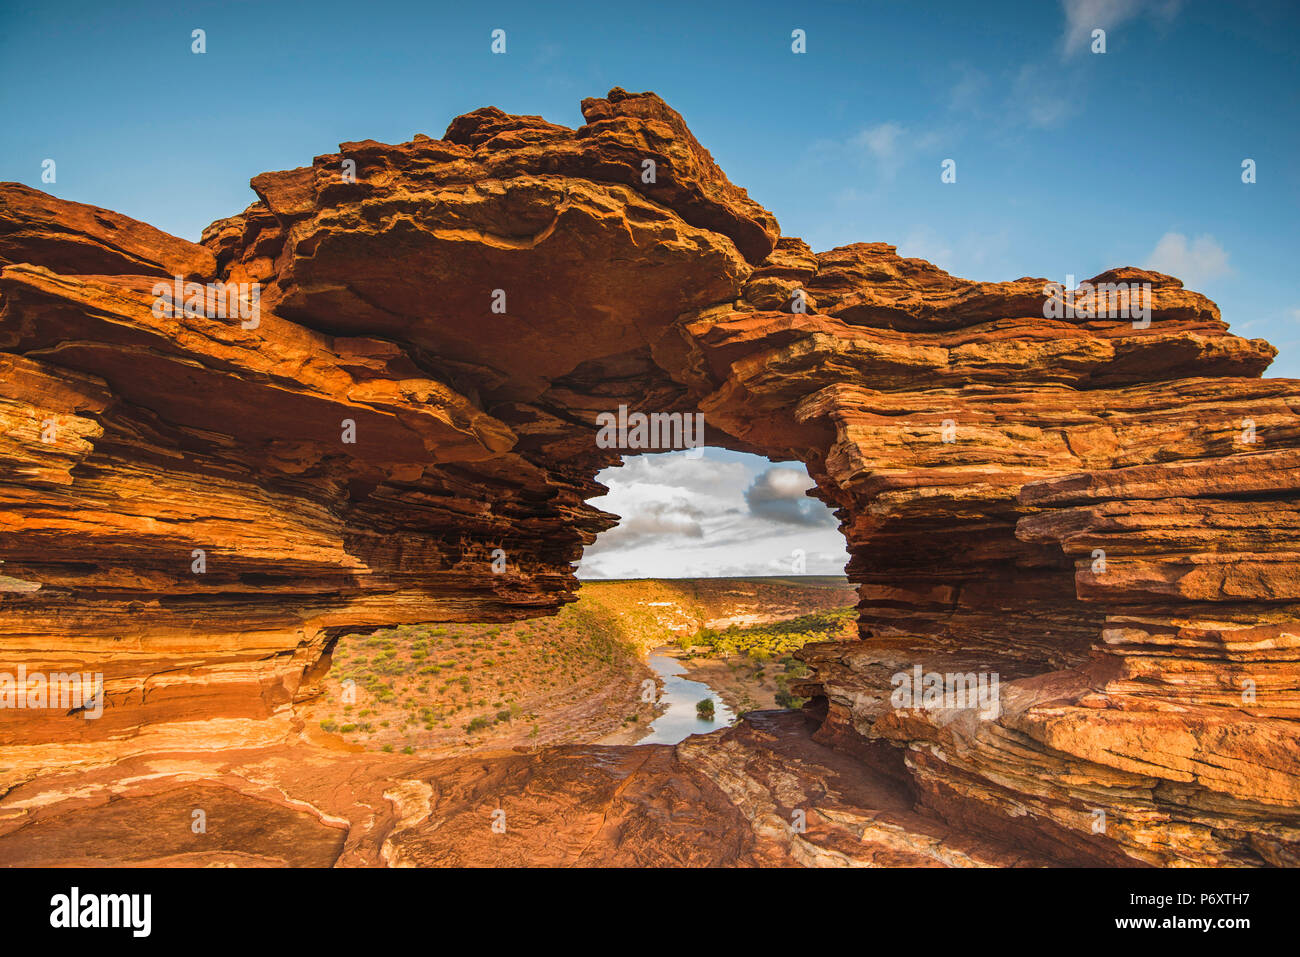 Kalbarri National Park, Kalbarri, Western Australia, Australia. Popular Nature's Window lookout and the Murchison River Gorge. Stock Photo